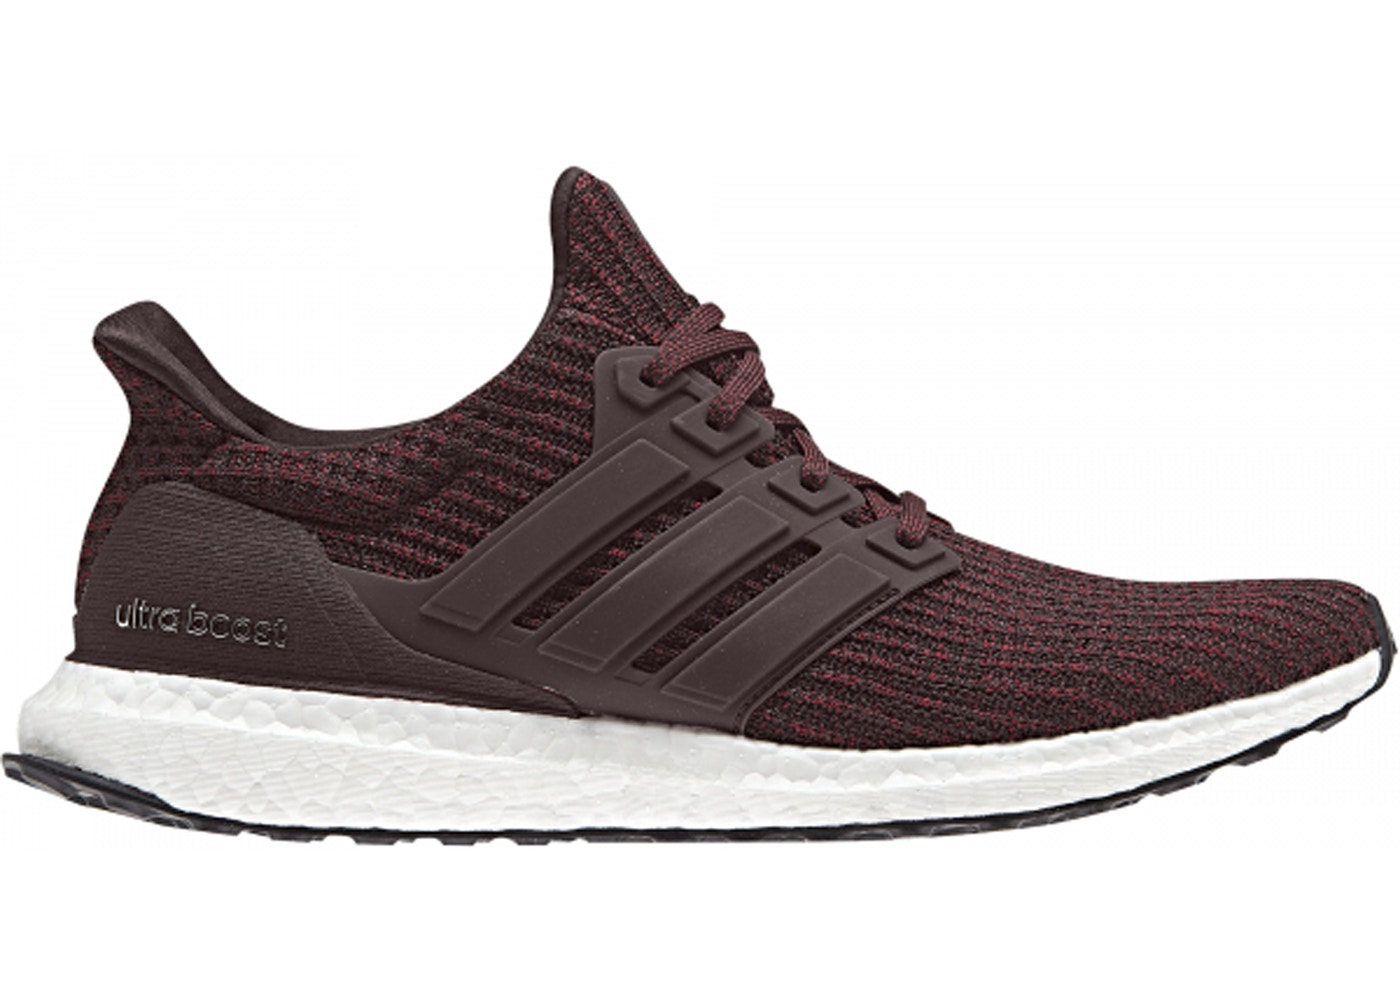 0ff684c264287 adidas Ultra Boost Size 4 Shoes - Release Date